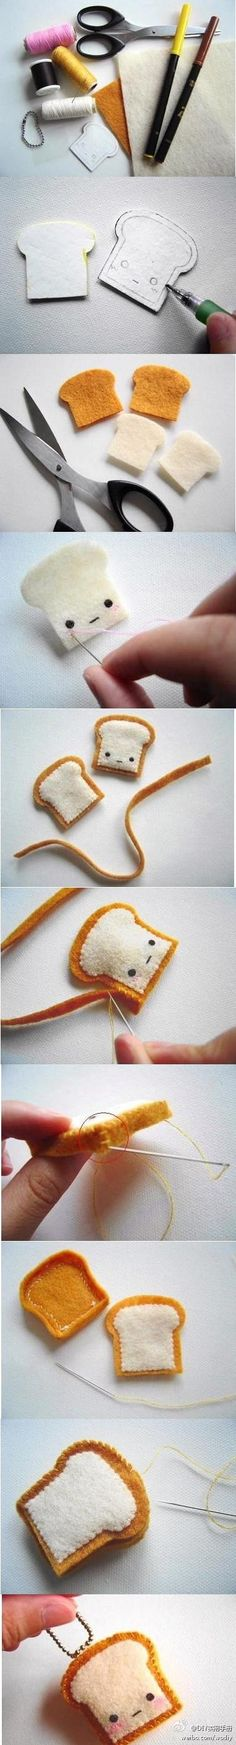 DIY Felt Toast Brooch